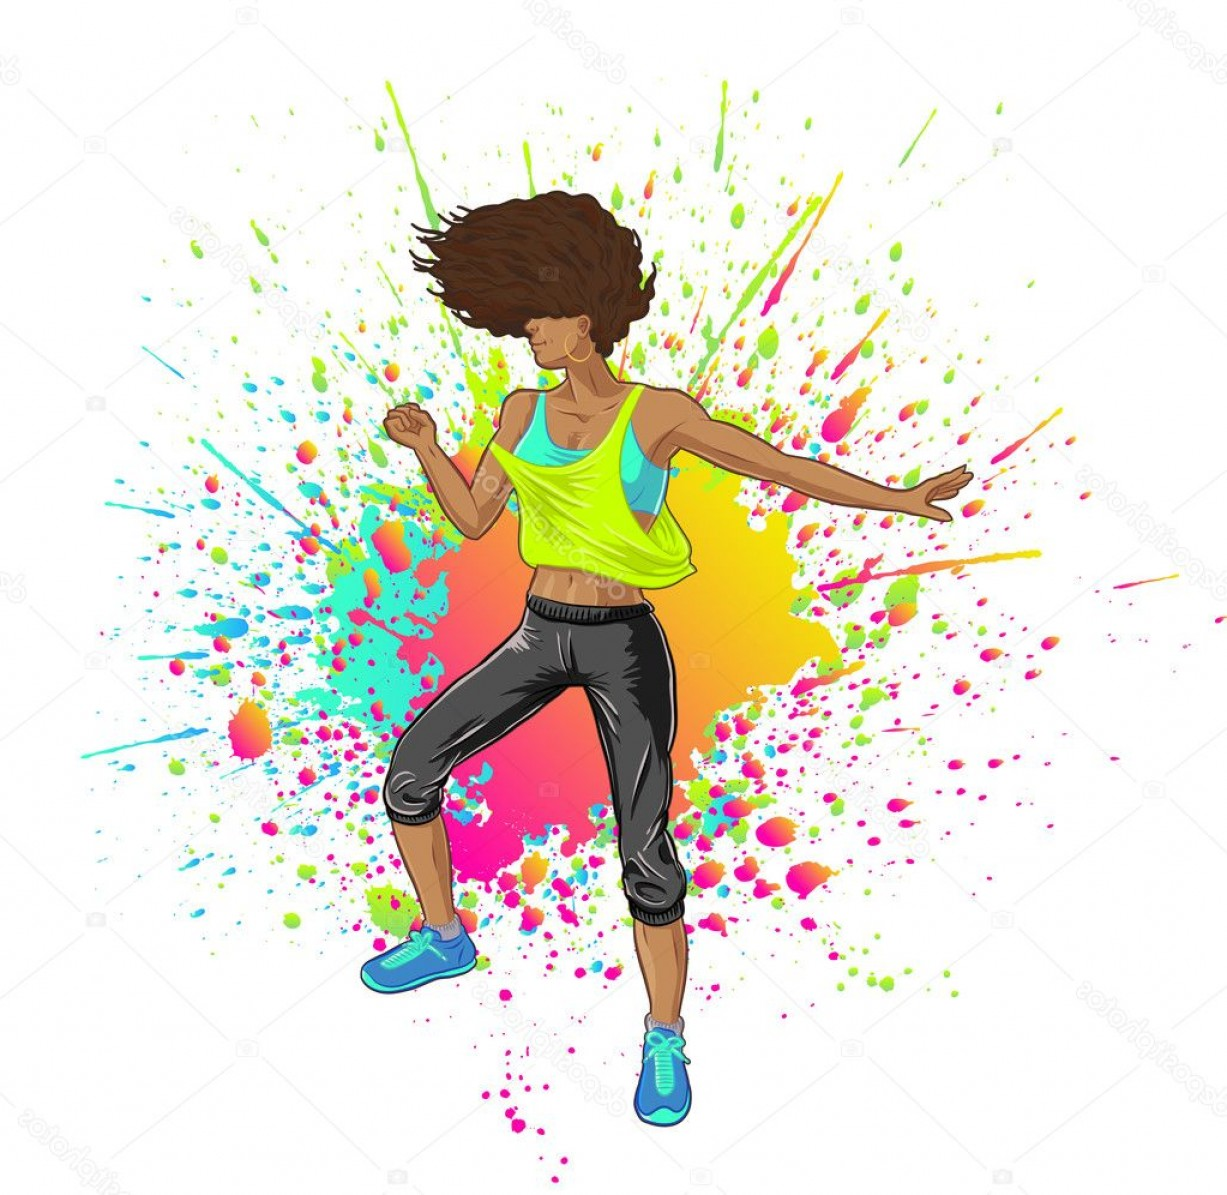 Zumba Vector Illustration: Stock Illustration Fitness Girl Dancing Zumba Or